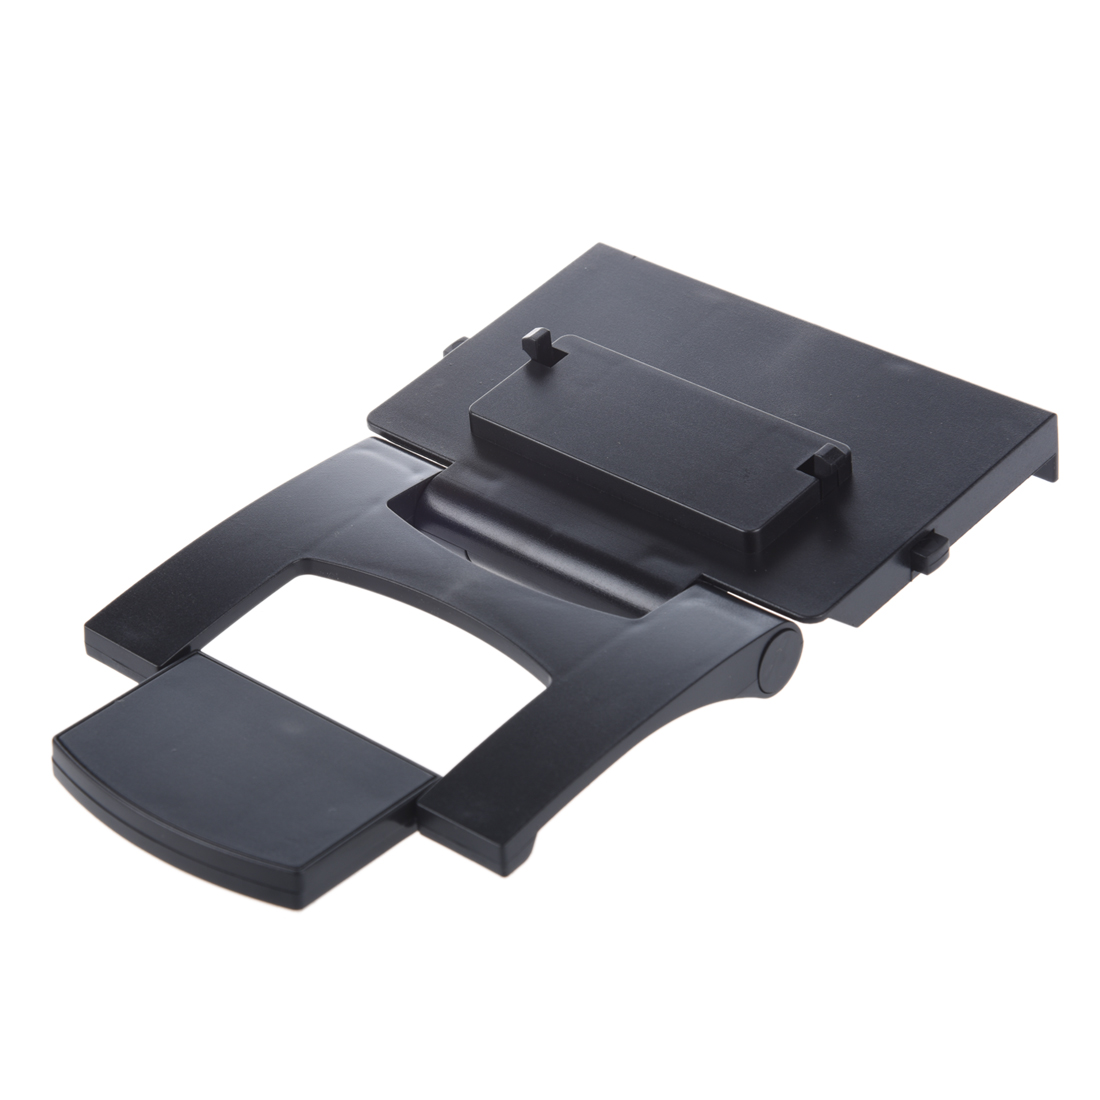 NEW TV Clip Mount Stand Holder Bracket For Microsoft XBOX